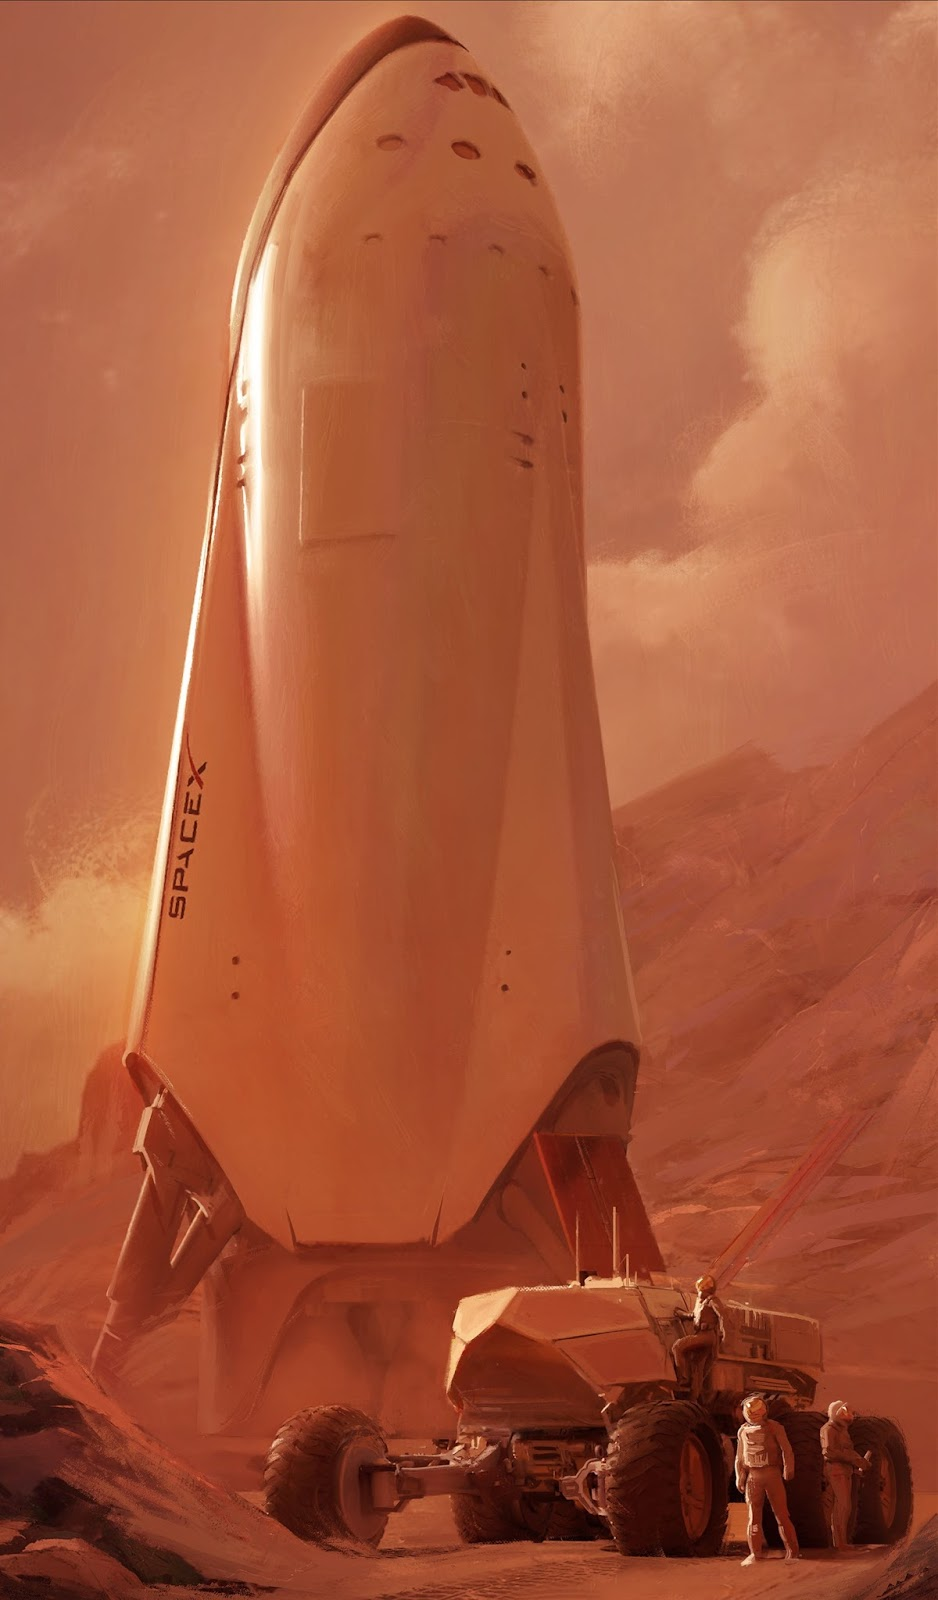 SpaceX spaceship on Mars by Alexandra Hodgson